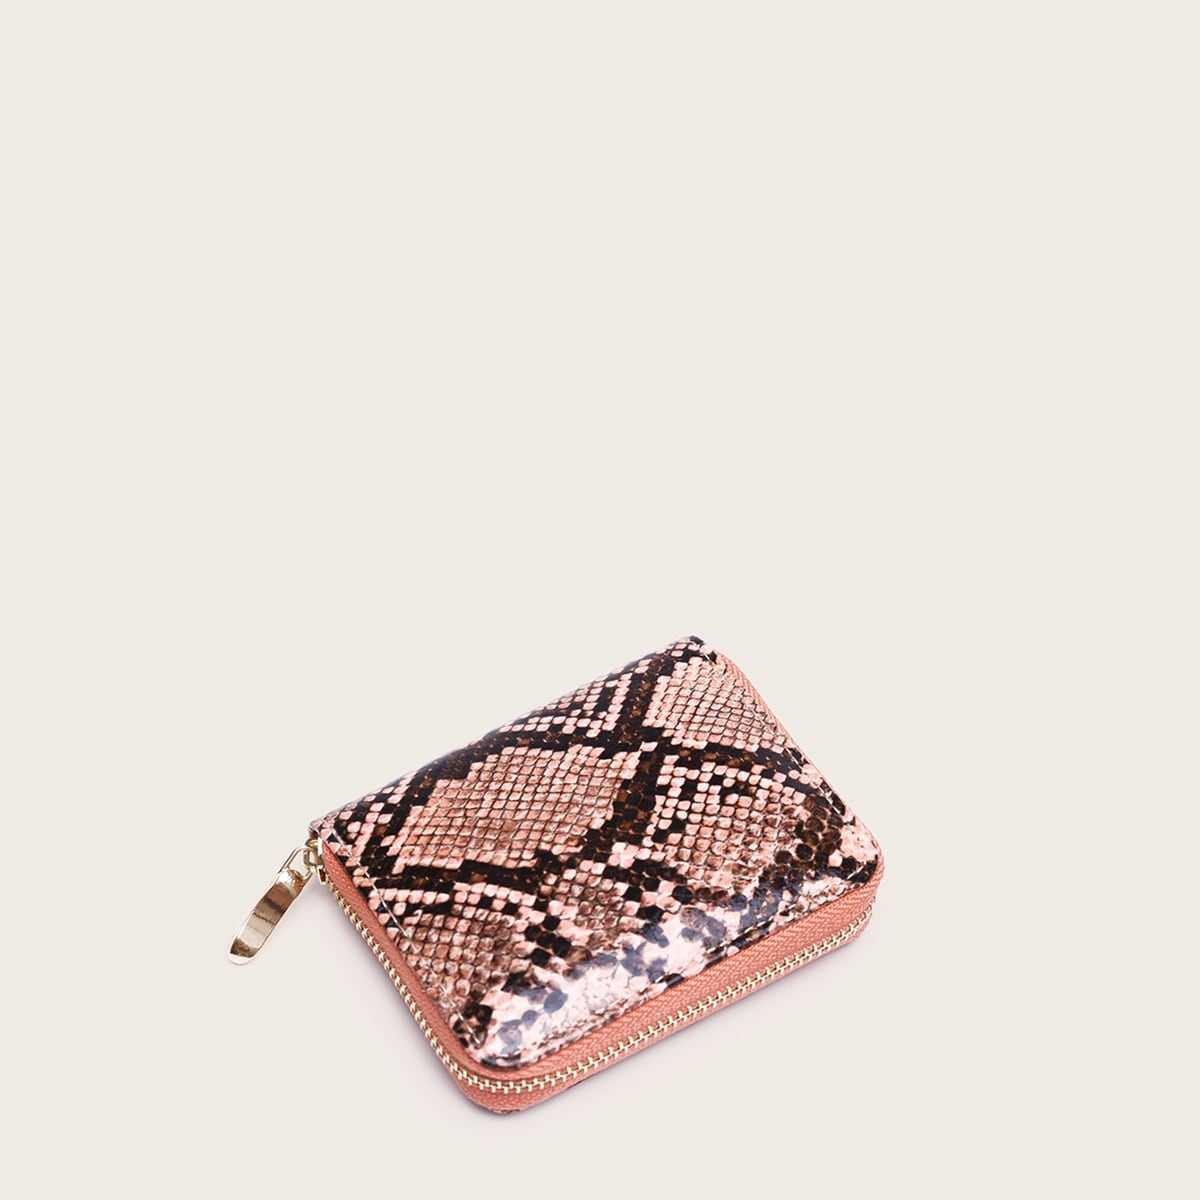 Snakeskin Print Purse in Pink by ROMWE on GOOFASH